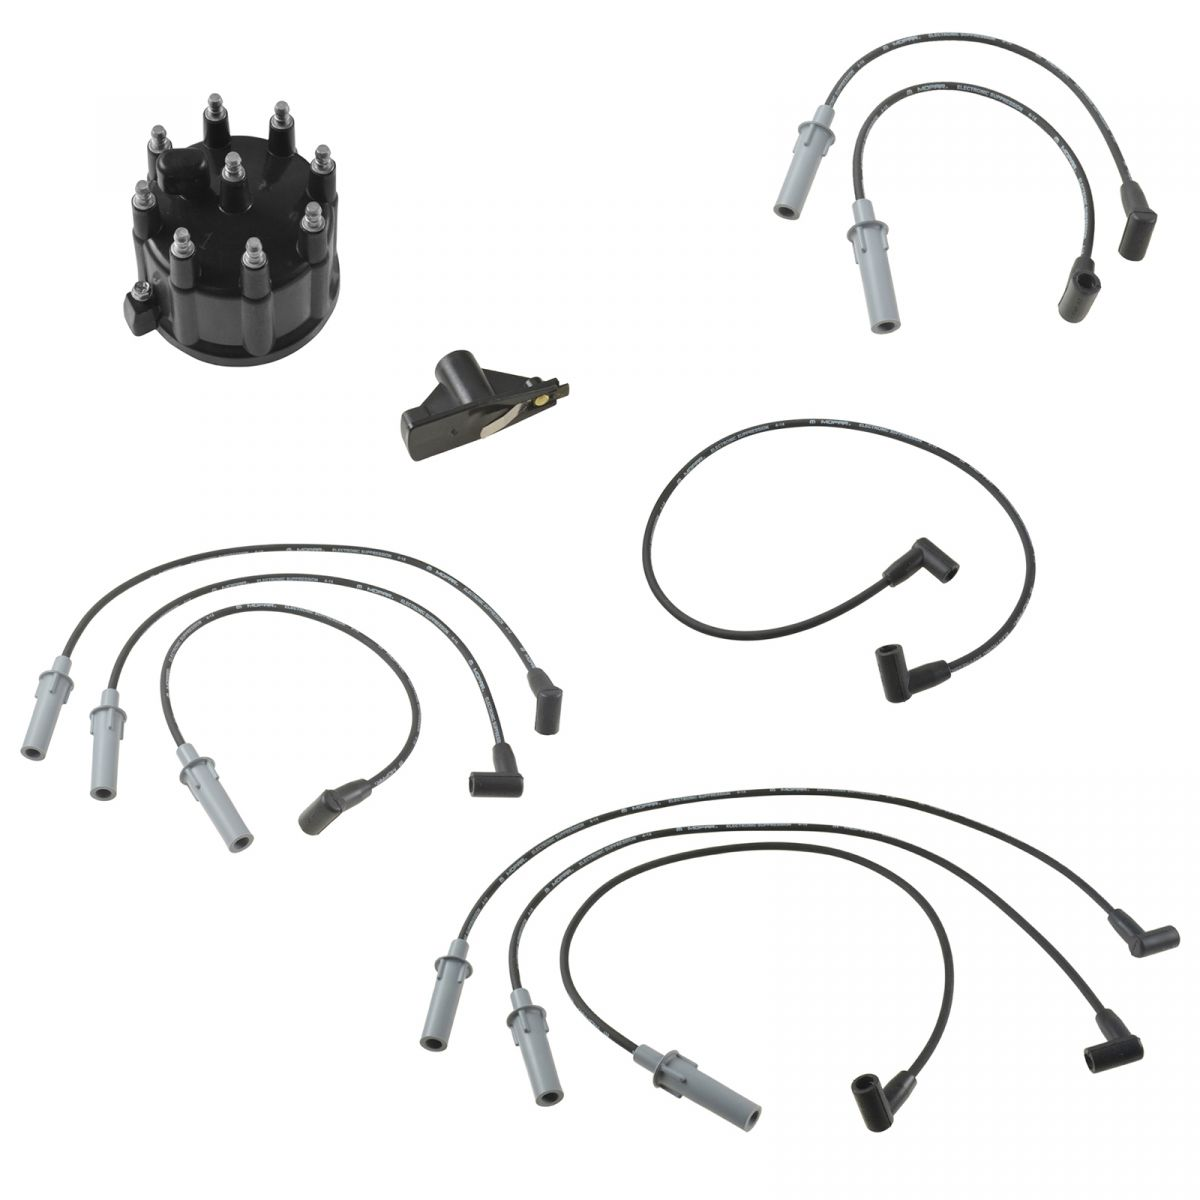 OEM Spark Plug Wires Distributor Cap & Rotor Tune Up Kit